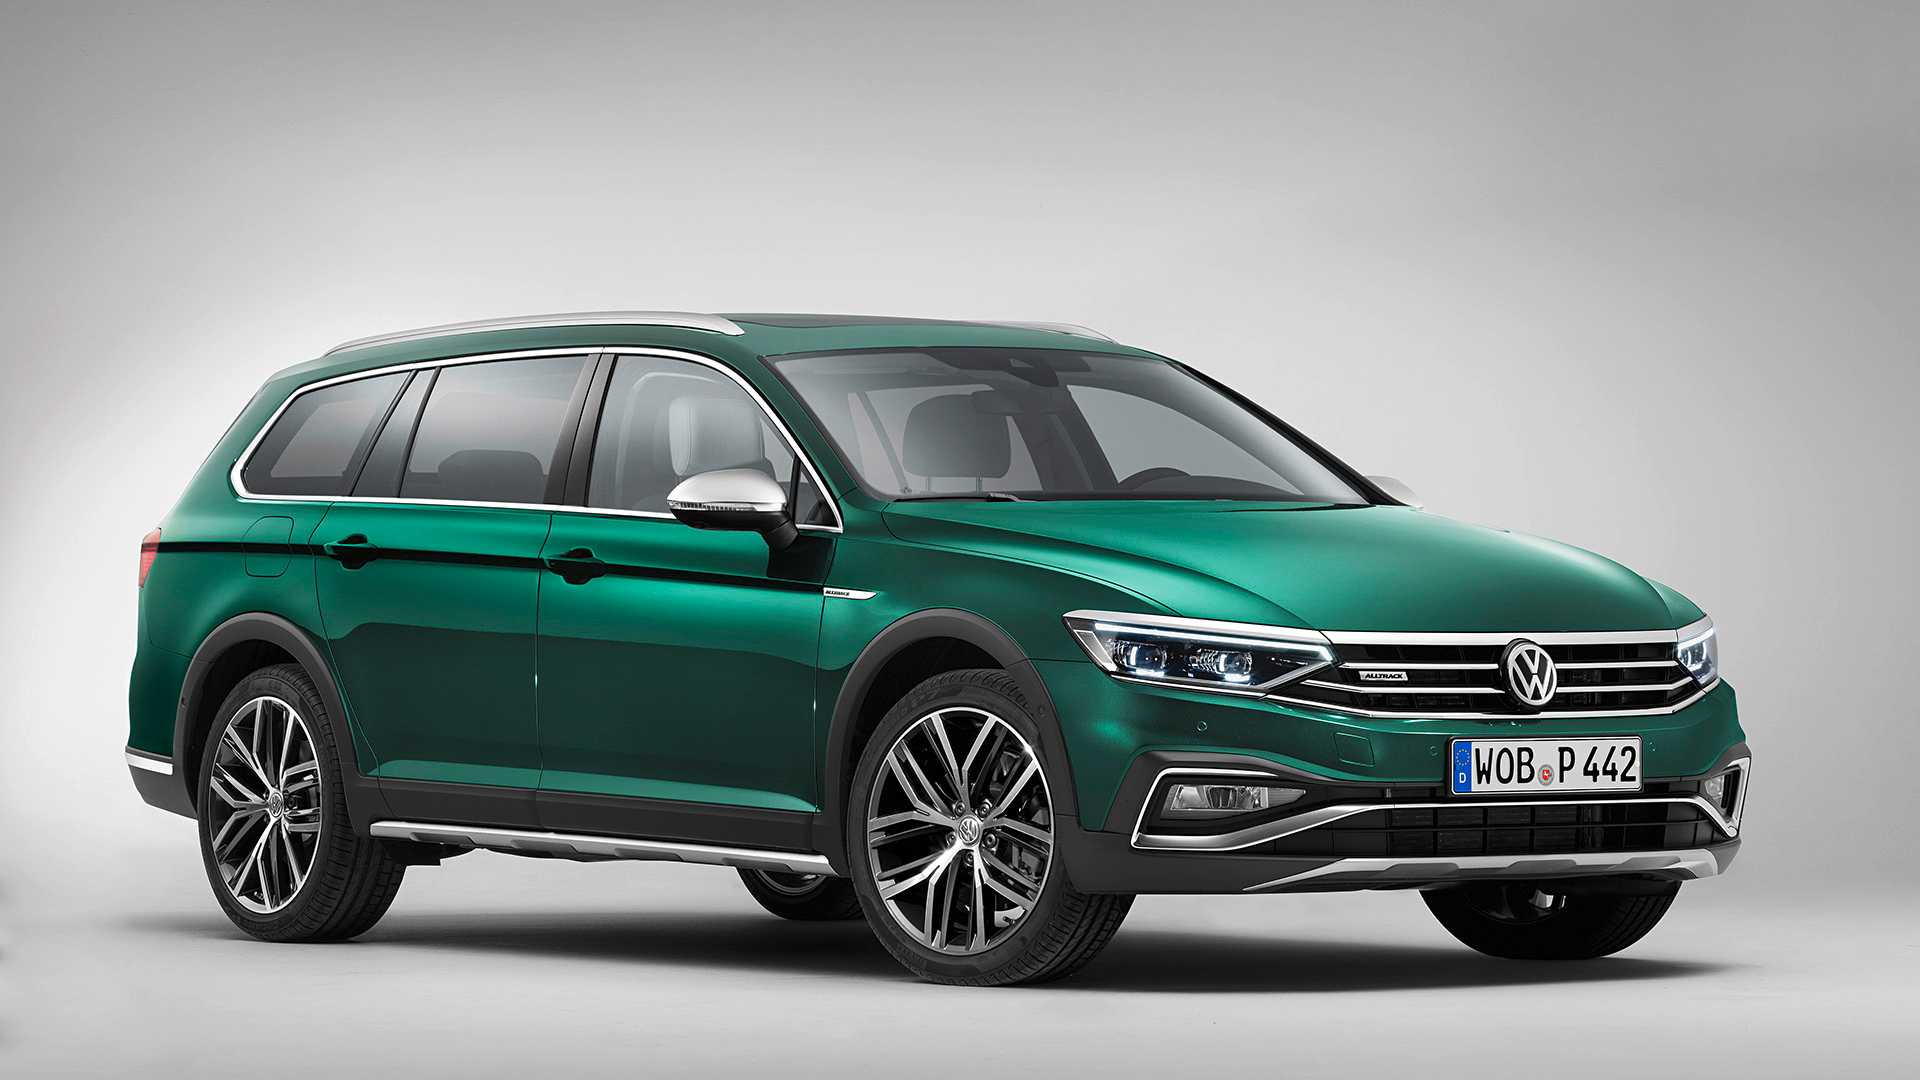 vw-passat-facelift-2019 (21)